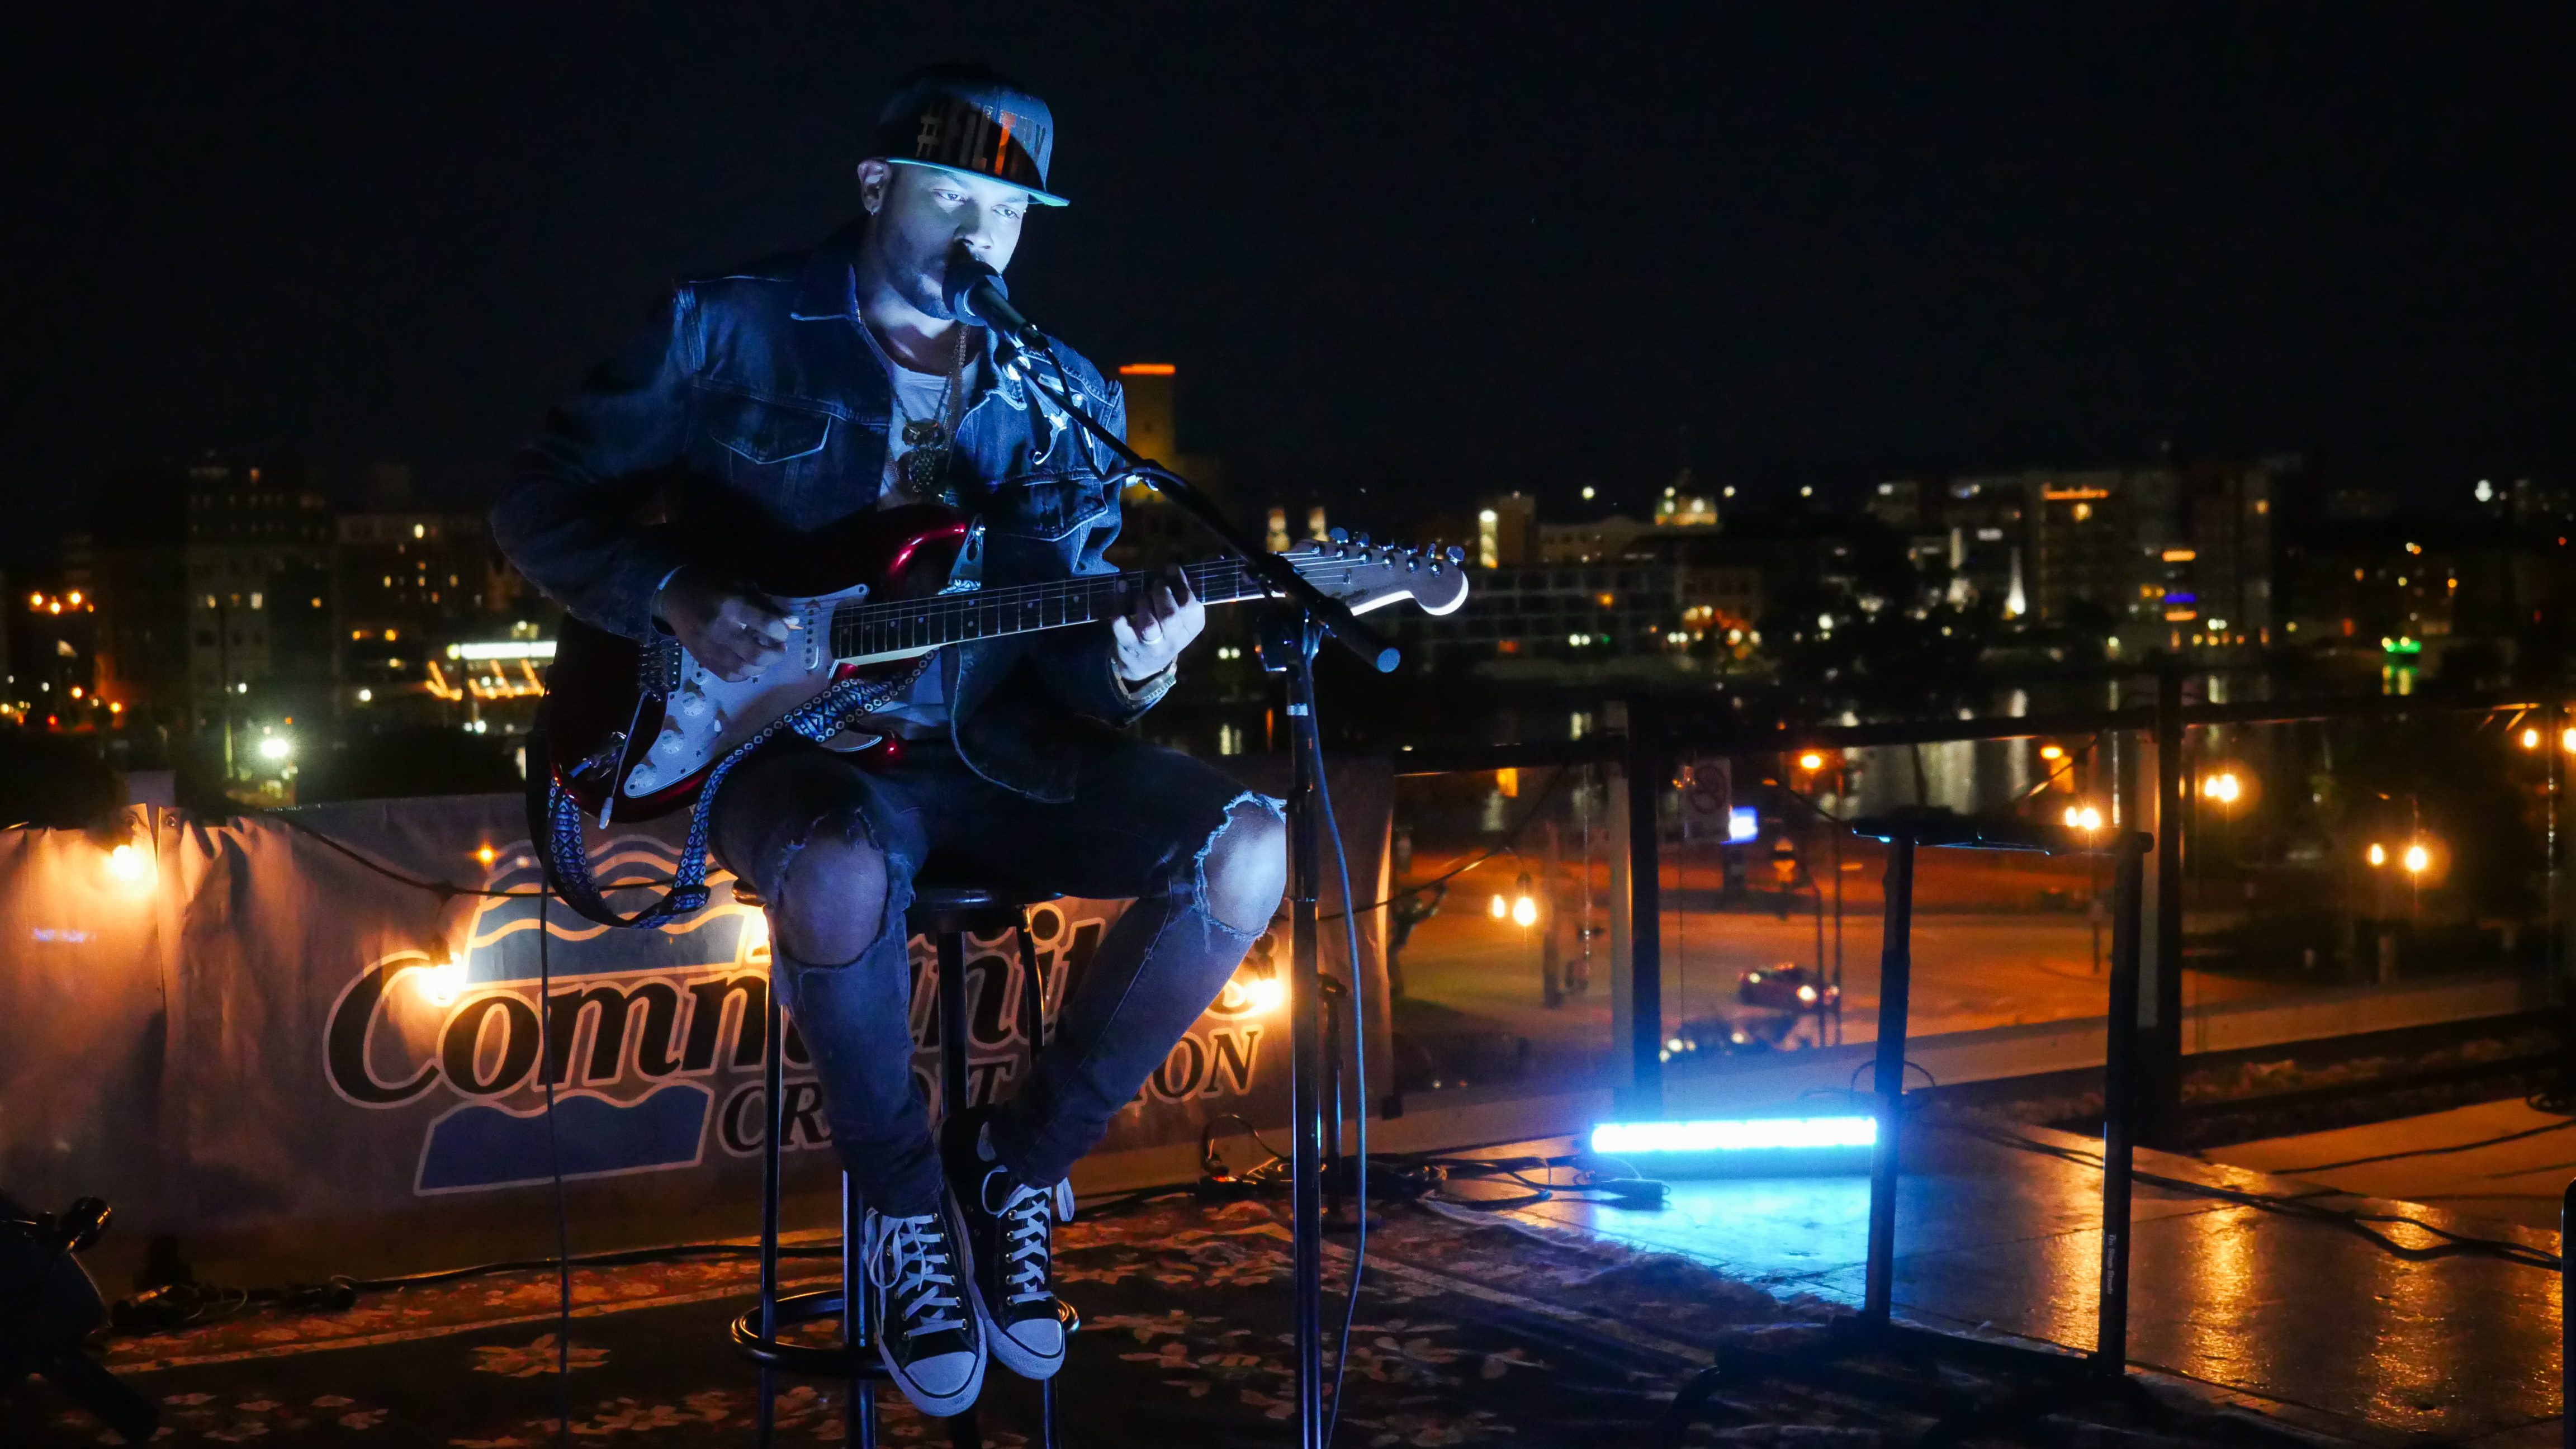 Seattle's Ayron Jones performing Hopeland Festival 2019 at Titletown Brewing Co.'s Rooftap in the Railyard District of downtown Green Bay, Friday, September 6th, 2019 (WCWF/ Beni Petersen)<br><p></p>